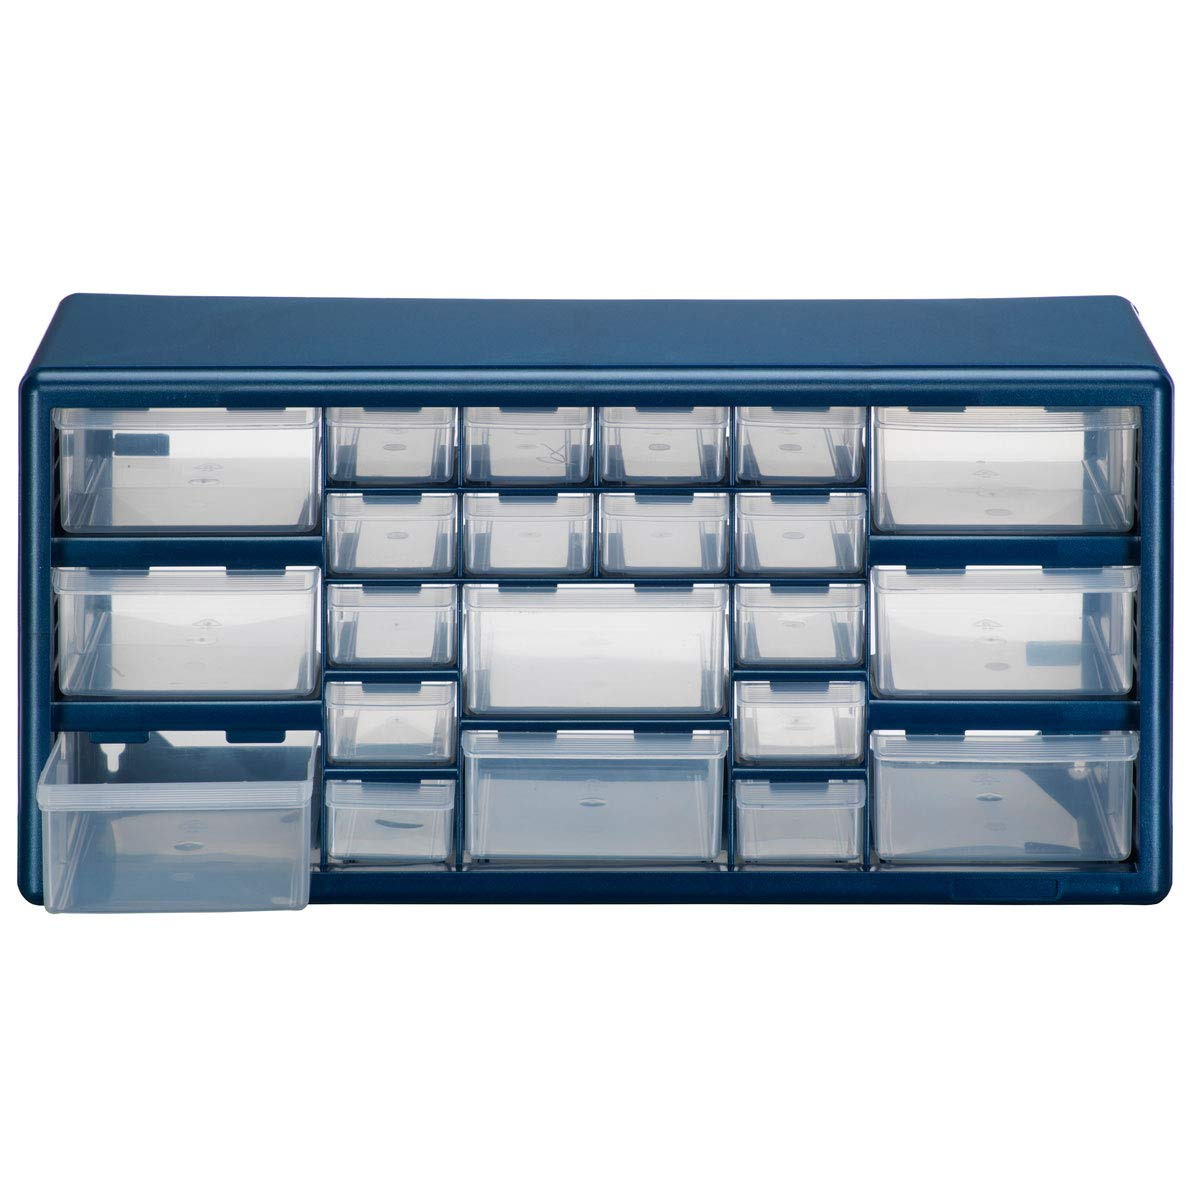 Stack On DSB-22-3 22 Compartment Small Parts Organizer Indoor Storage Cabinet